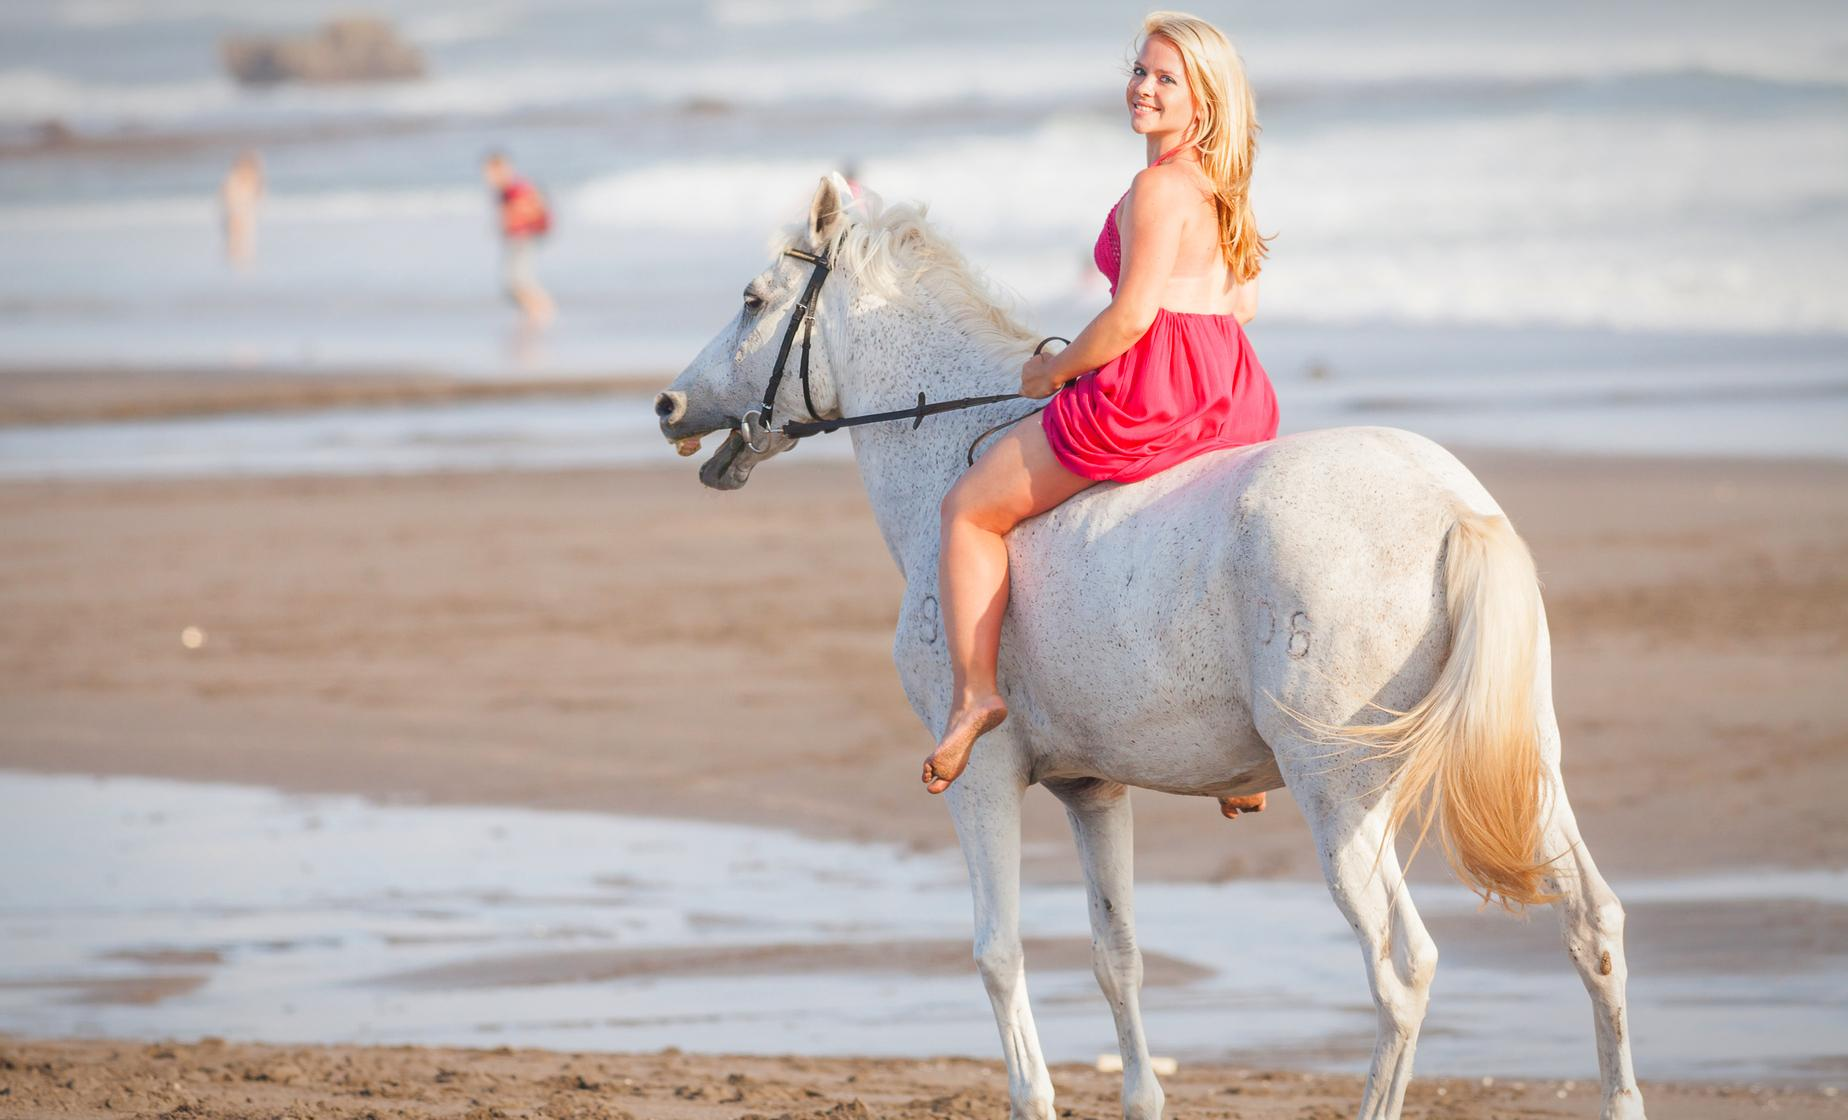 Beach Horseback Ride and Tubing Tour in Ocho Rios